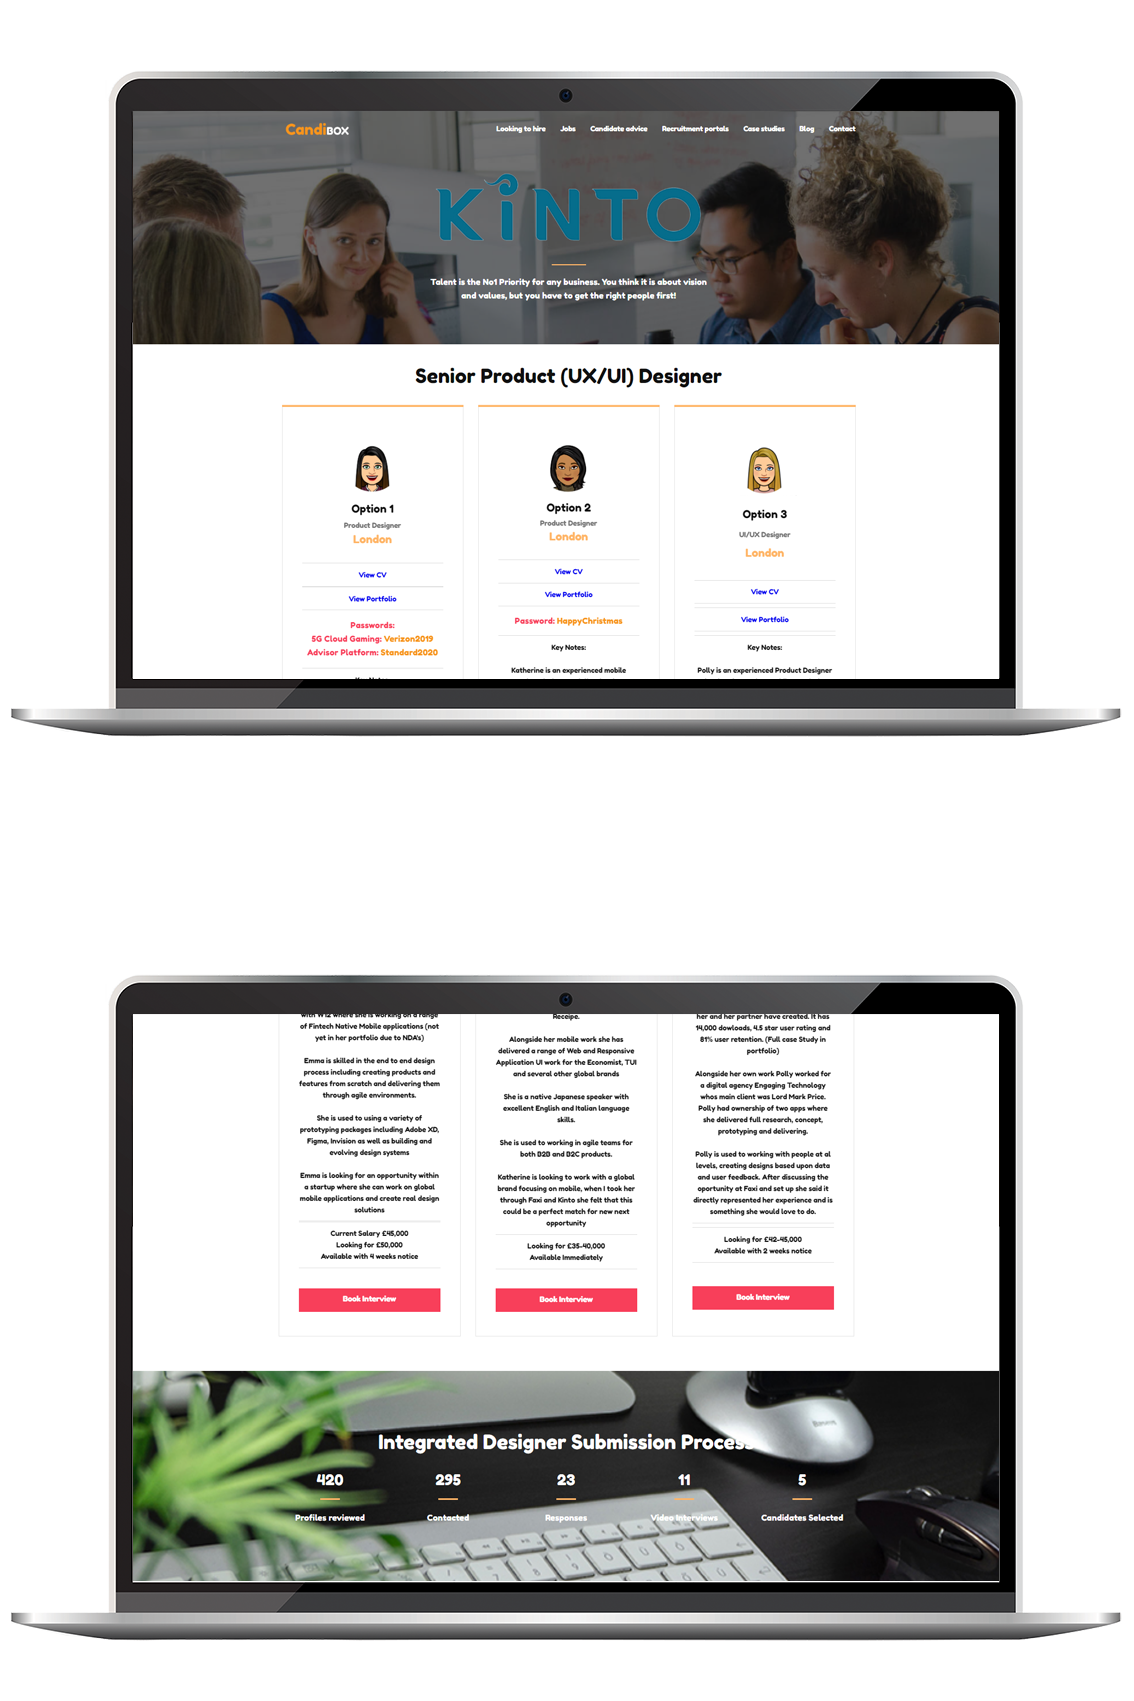 We delivered a campaign that attraced native mobile app product designers. We showed the opportunity as one that they would want to investigate and see as a potential career within a specialist mobile environment